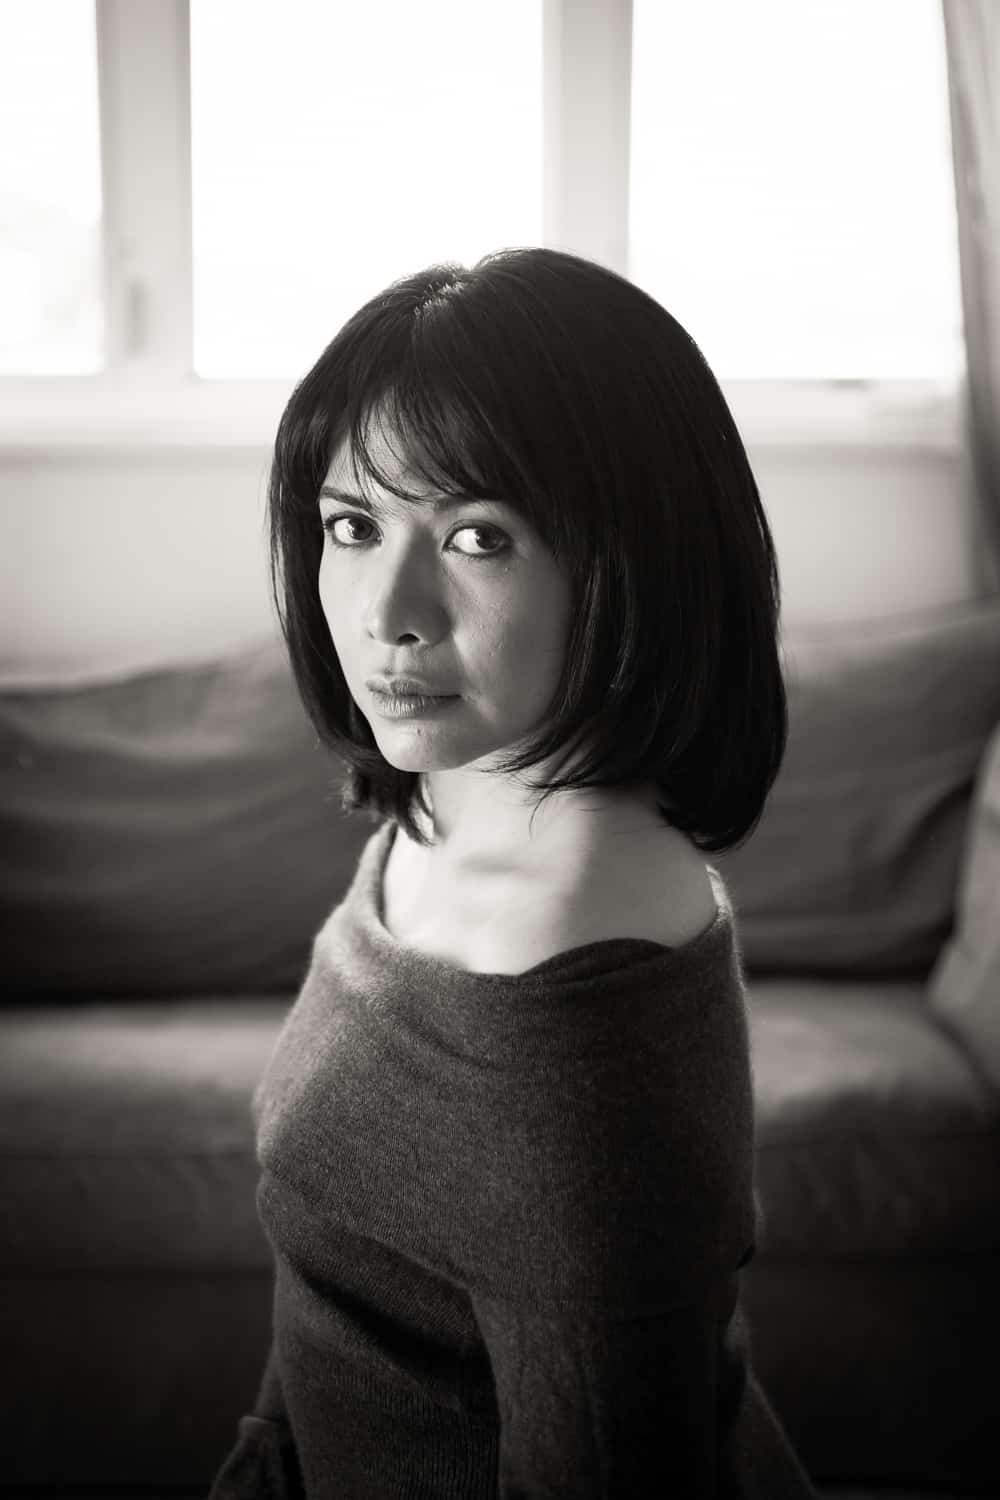 Black and white photo of woman with short black hair wearing off-shoulder sweater